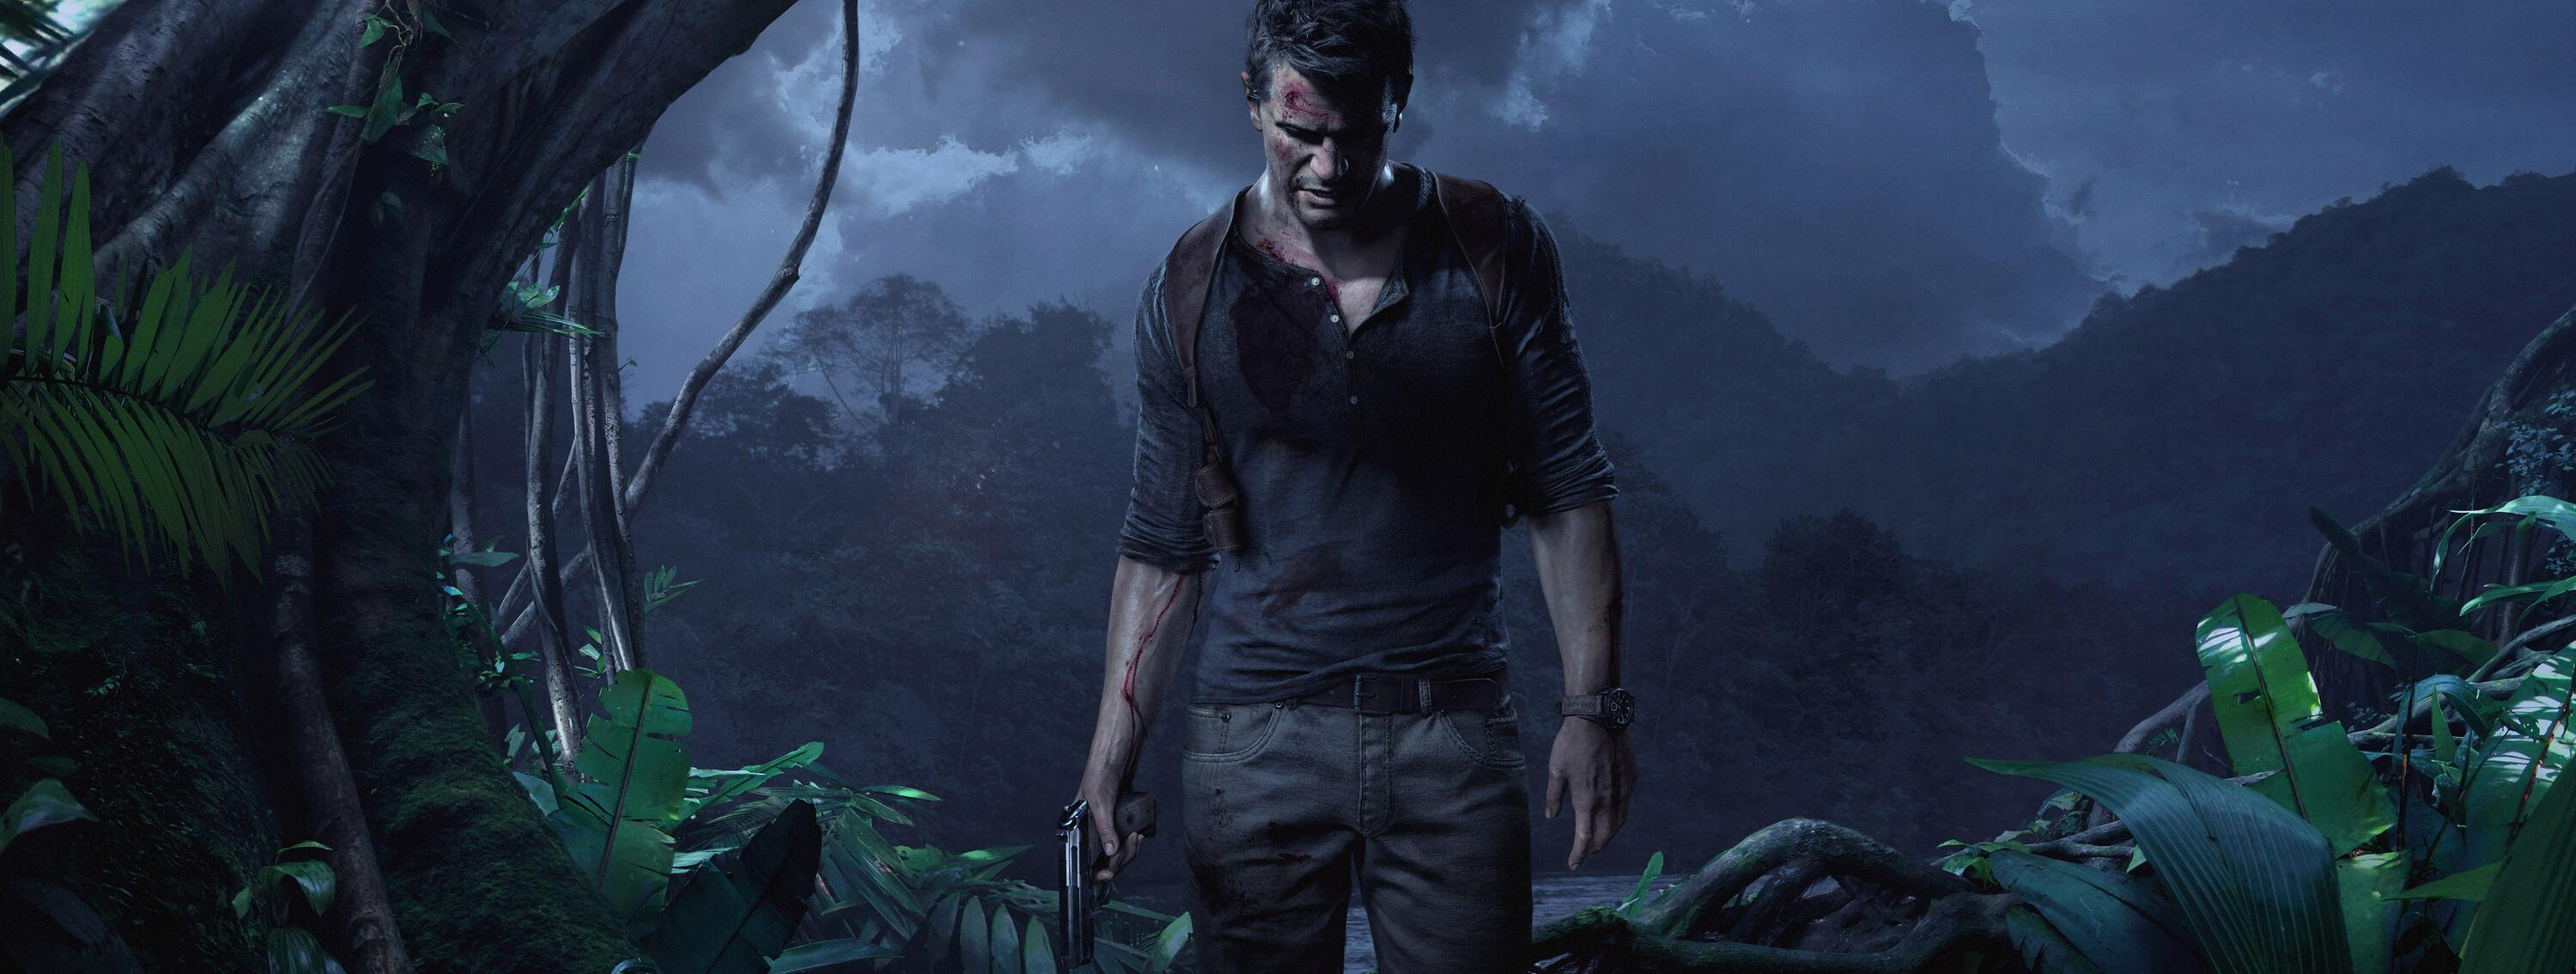 Bild zu Uncharted 4 - A Thief's End